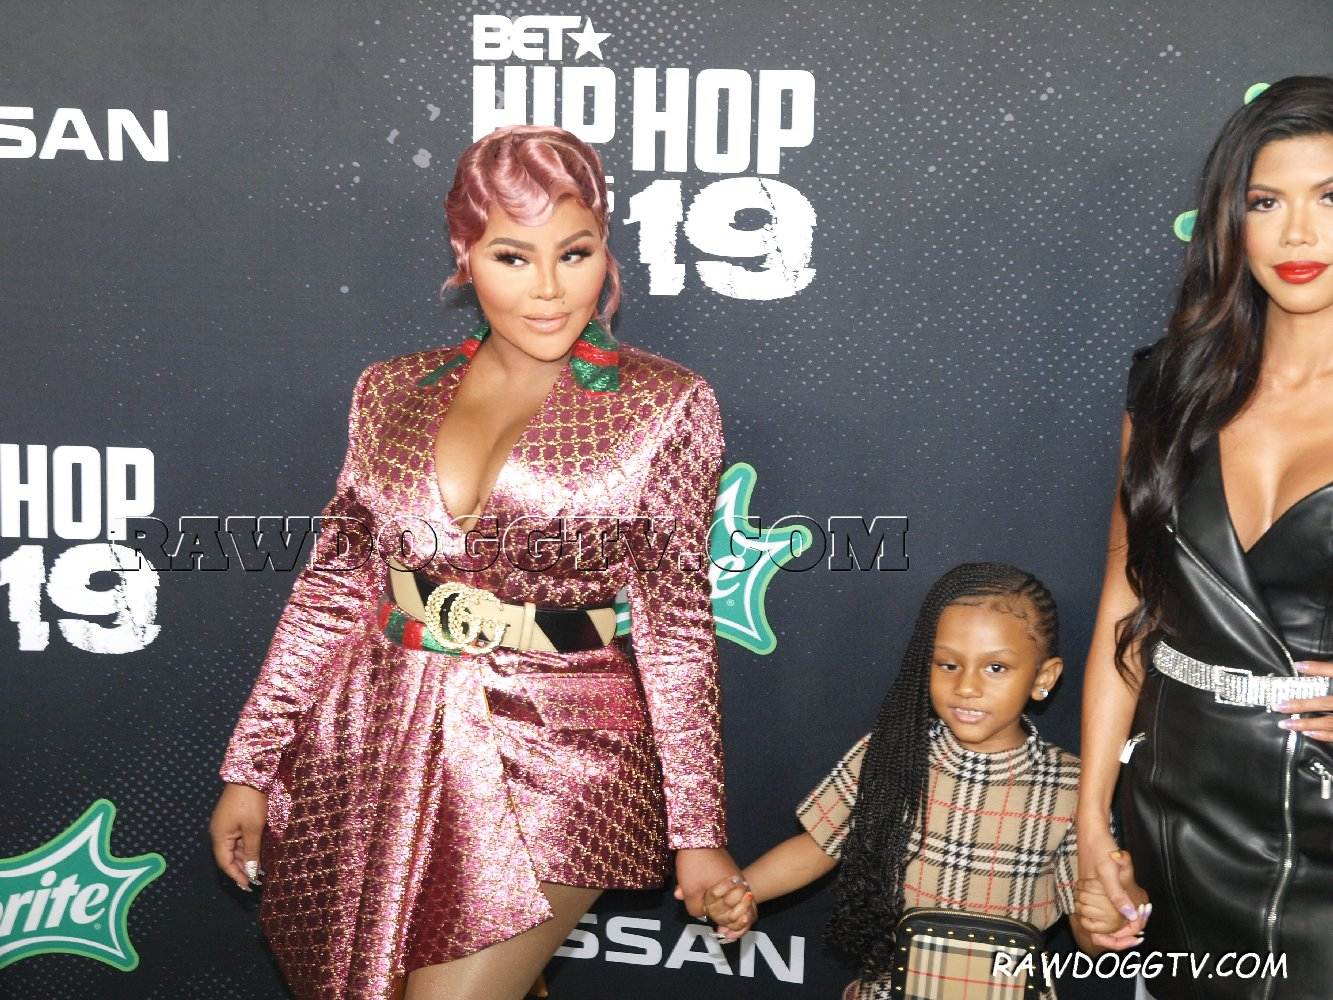 BET Hip Hop Awards 2019 Red Carpet Photos Atlanta (Photos are Free to use as is) RAWDOGGTV.com (473)490-2182